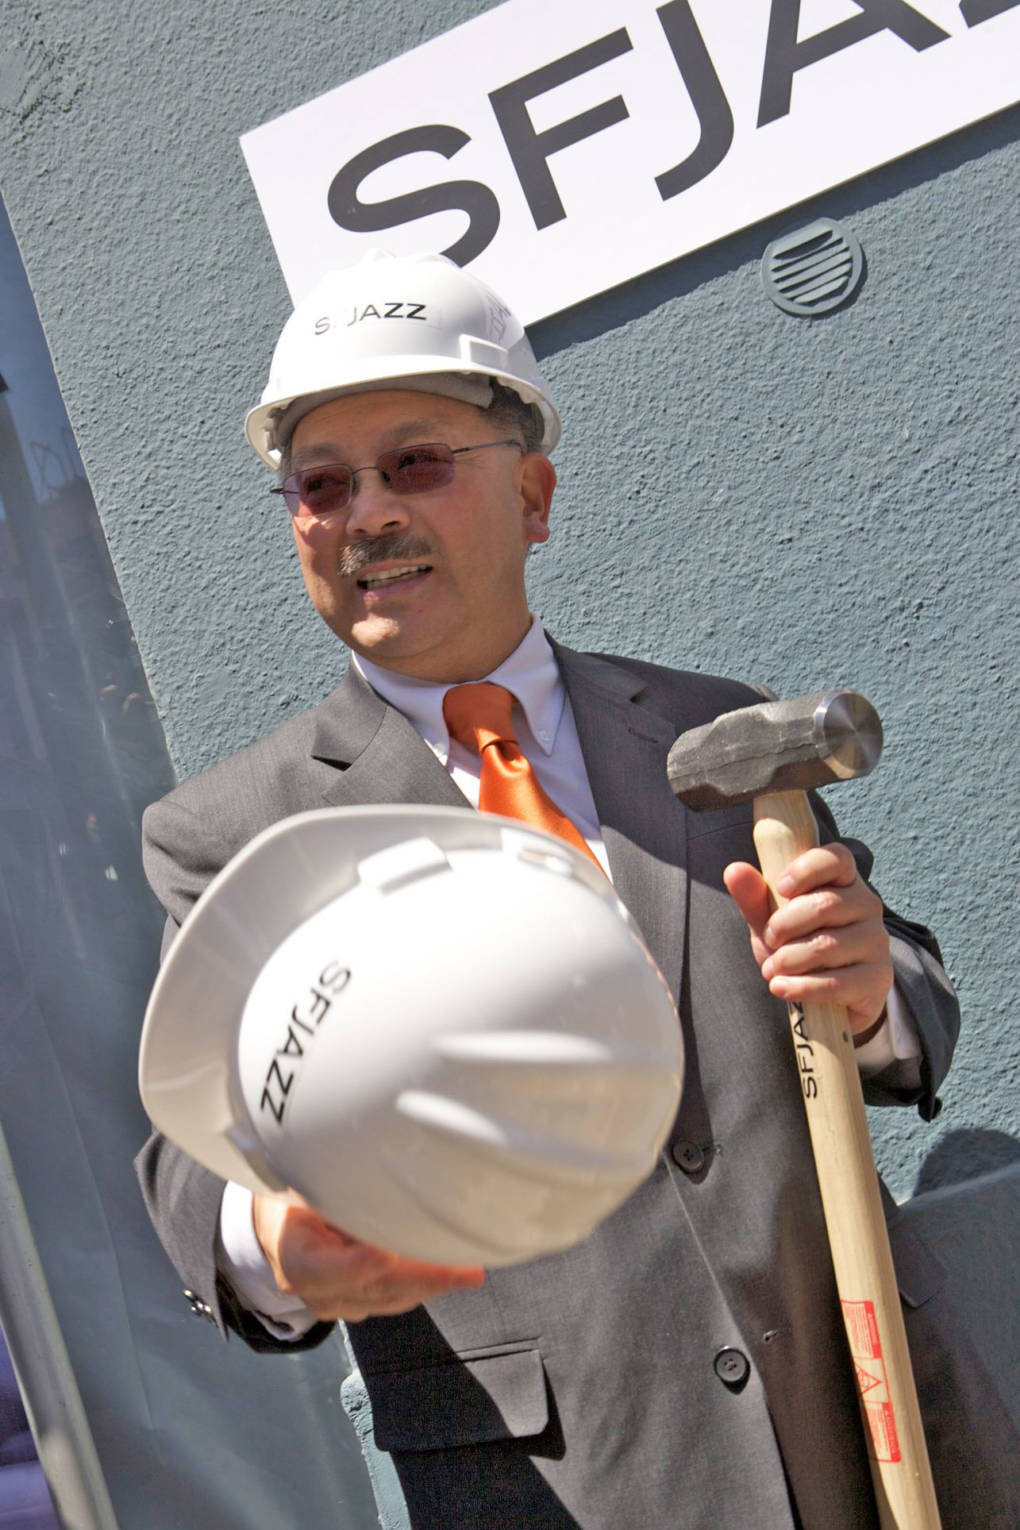 Mayor Ed Lee at a groundbreaking ceremony for SFJAZZ's new performance space and center in May 2011.